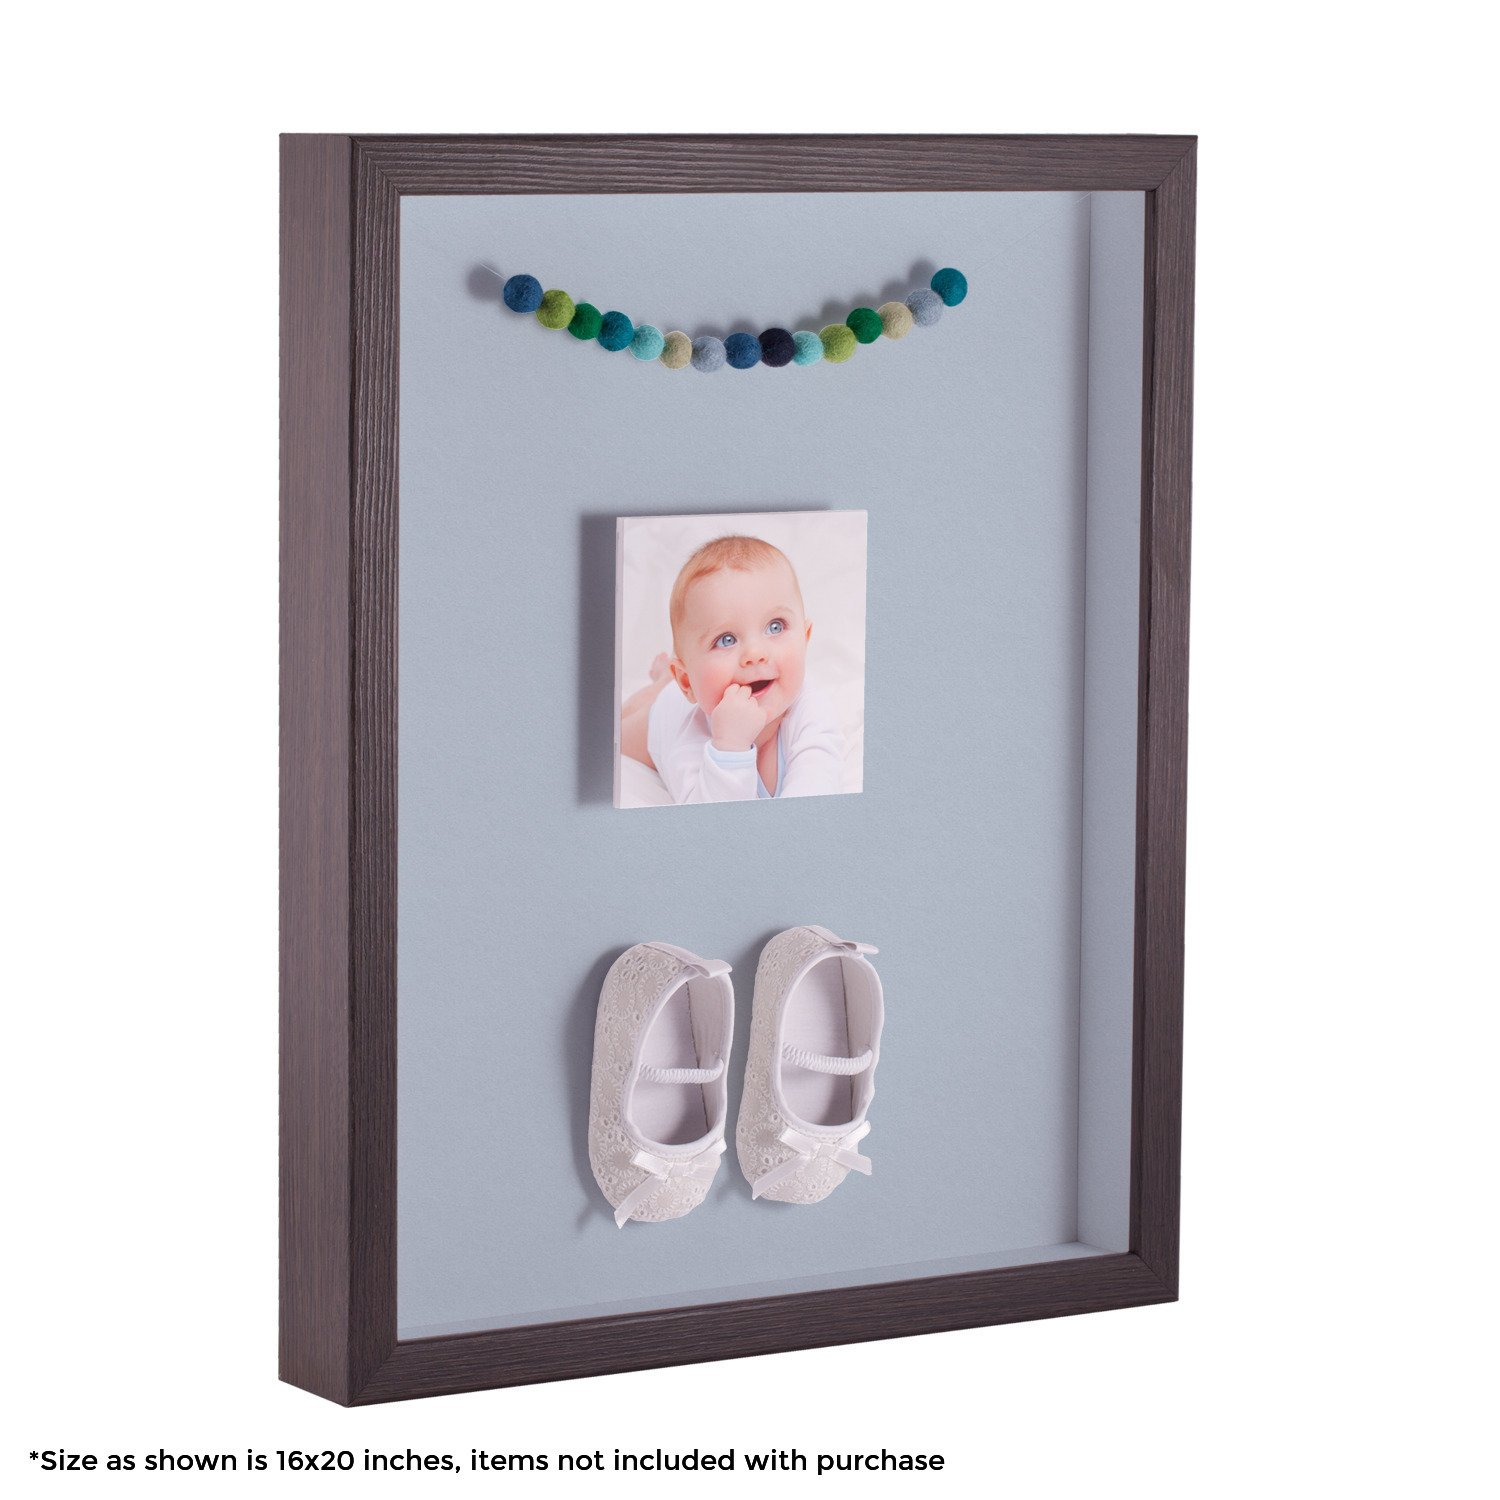 ArtToFrames 12 x 18 Inch Shadow Box Picture Frame, with a Melinga Oak Gray 1'' Shadowbox Frame and Baby Blue Mat